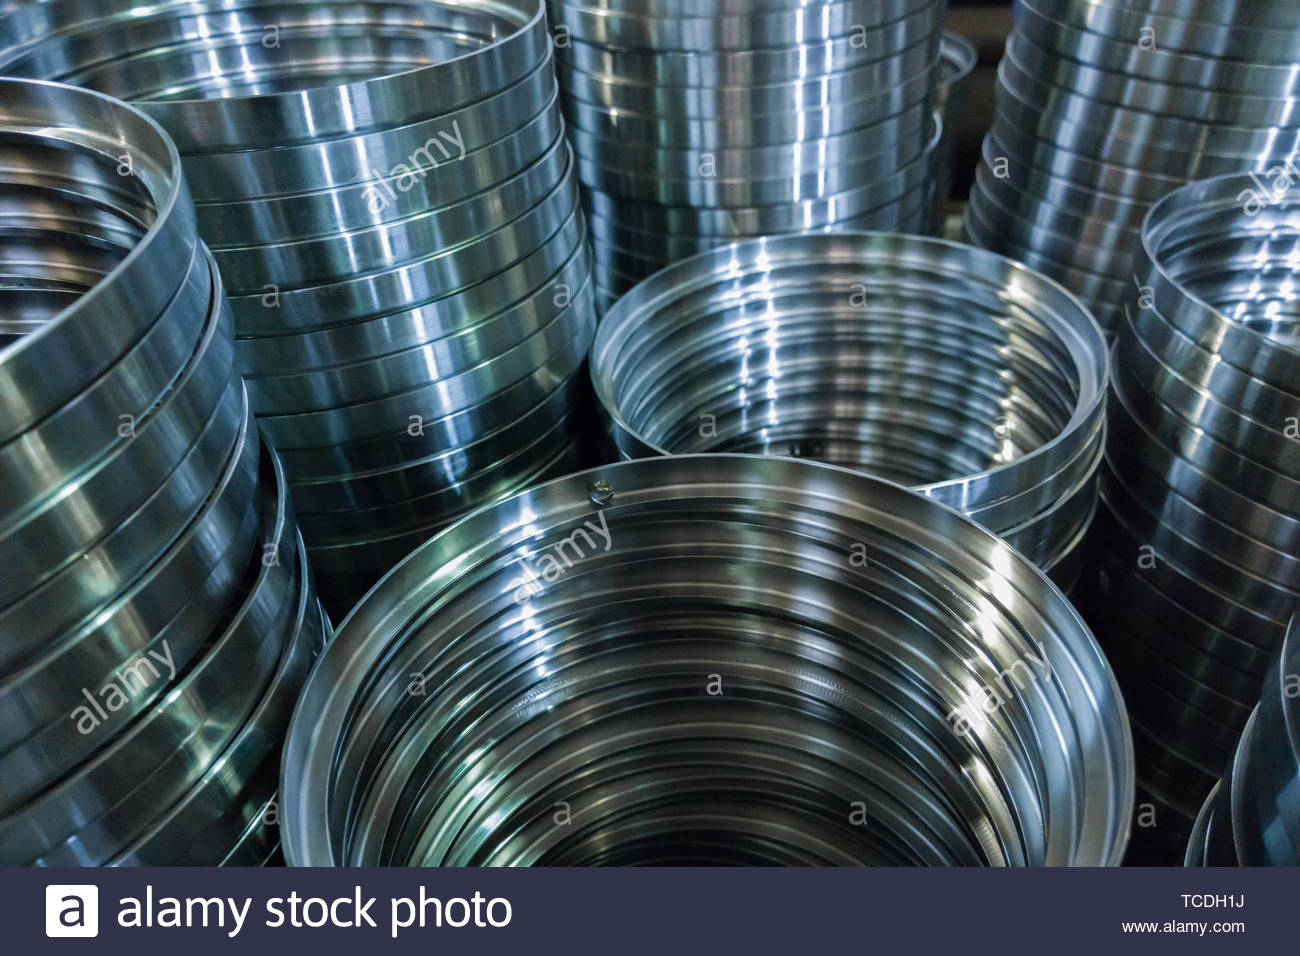 industrial manufacturing background of columns of shiny metal 1300x956